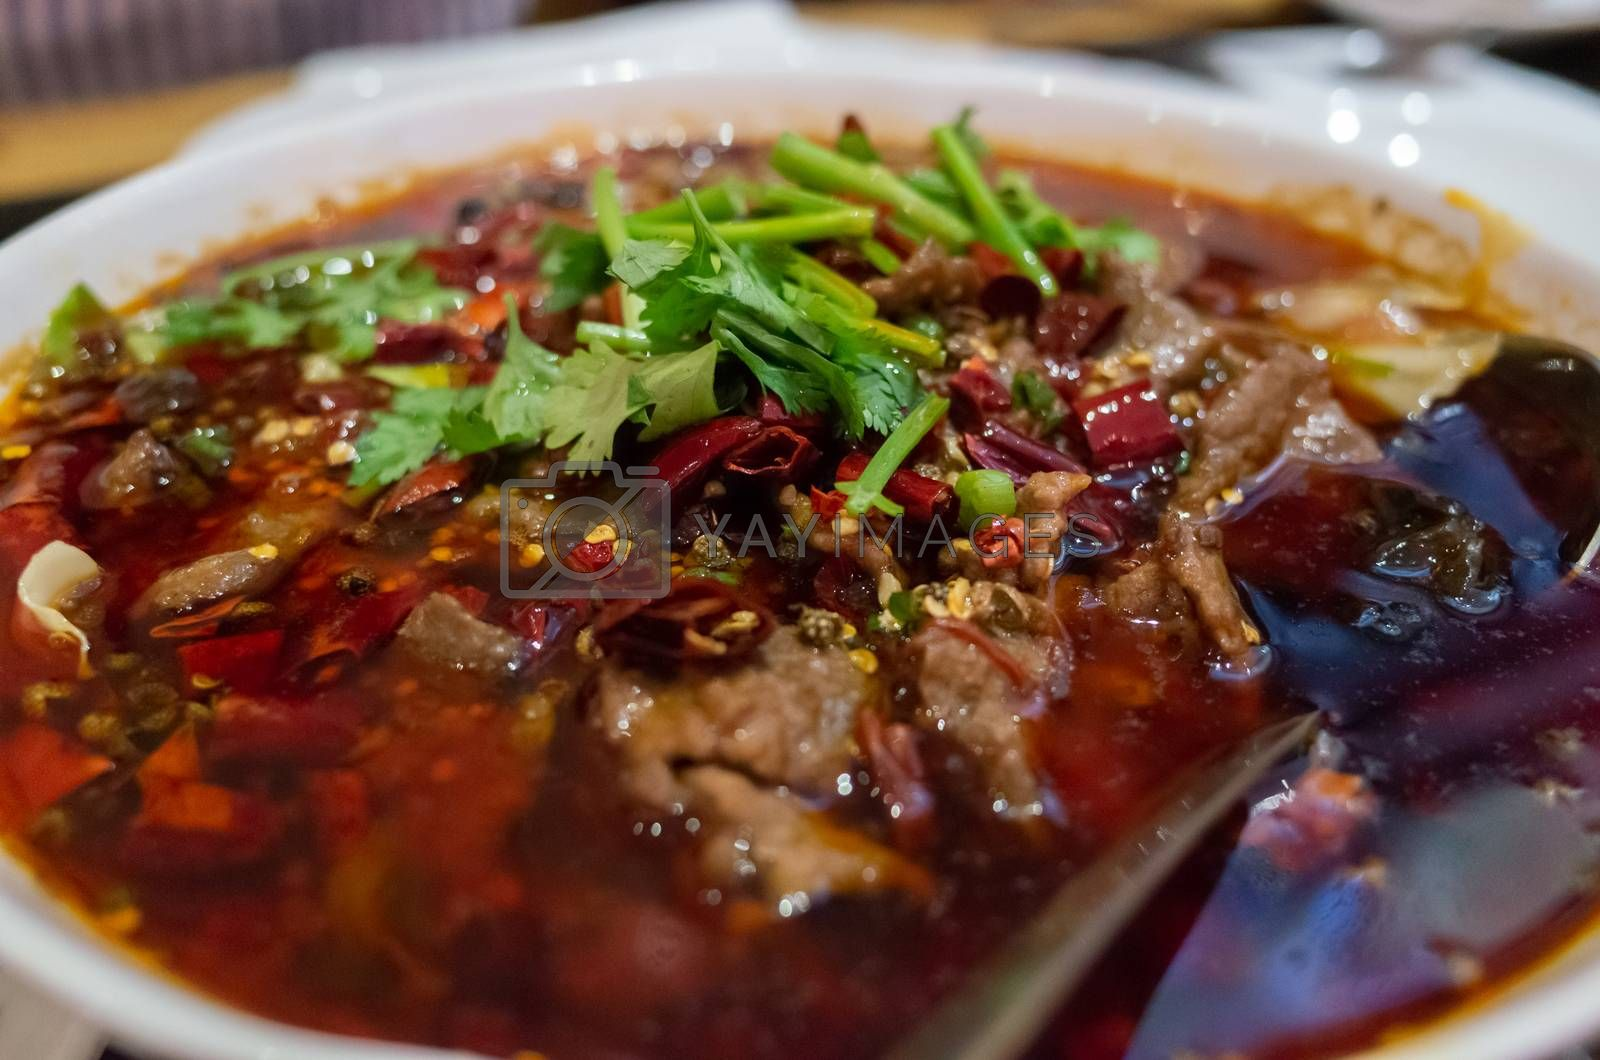 Royalty free image of Sze Chuan Spicy Hot Pot Beef Dish by kstphotography